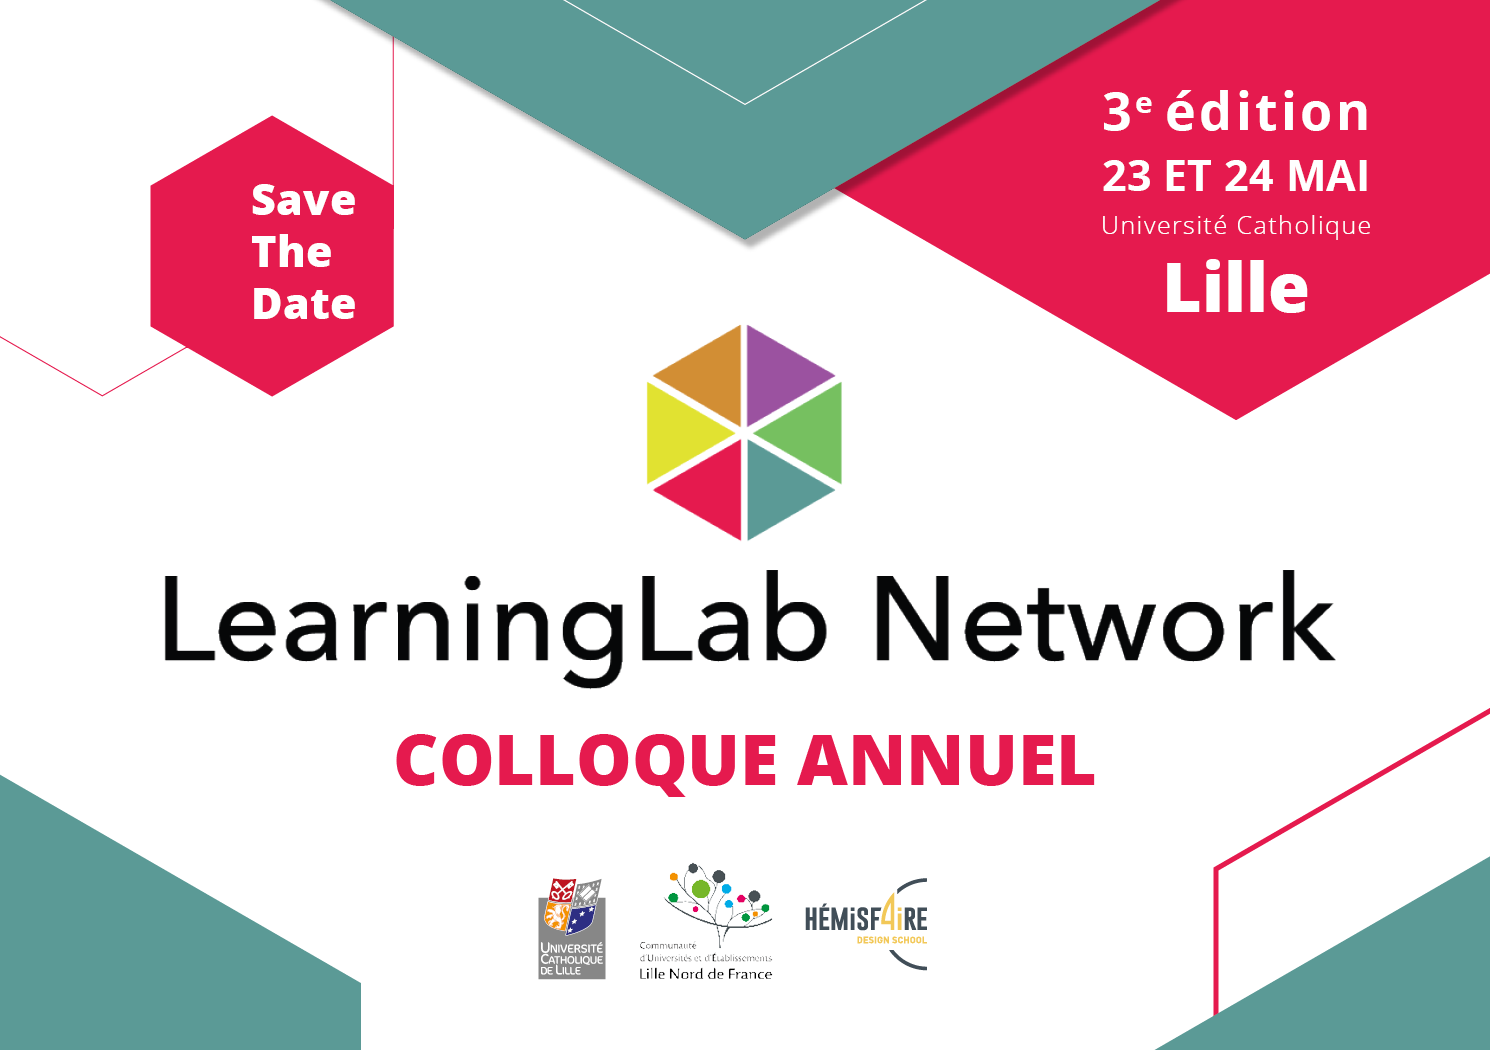 learningLab colloque